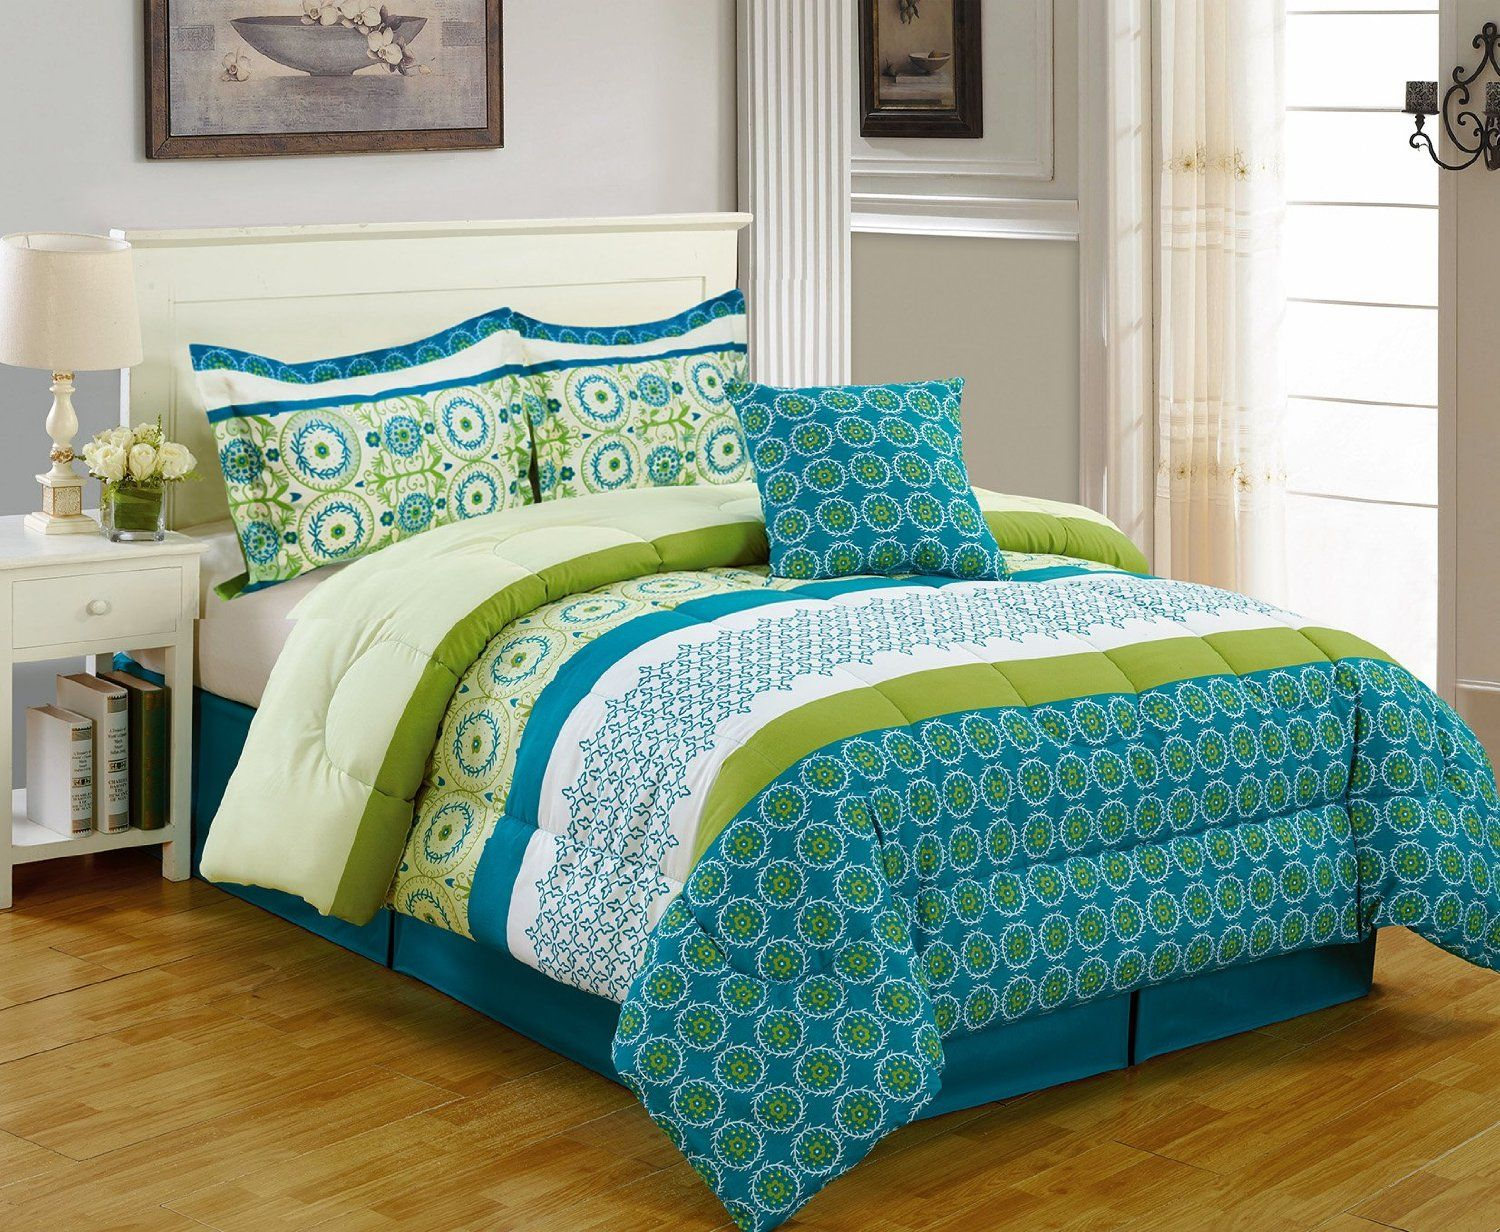 Multi Floral Comforters Comforter sets, Turquoise